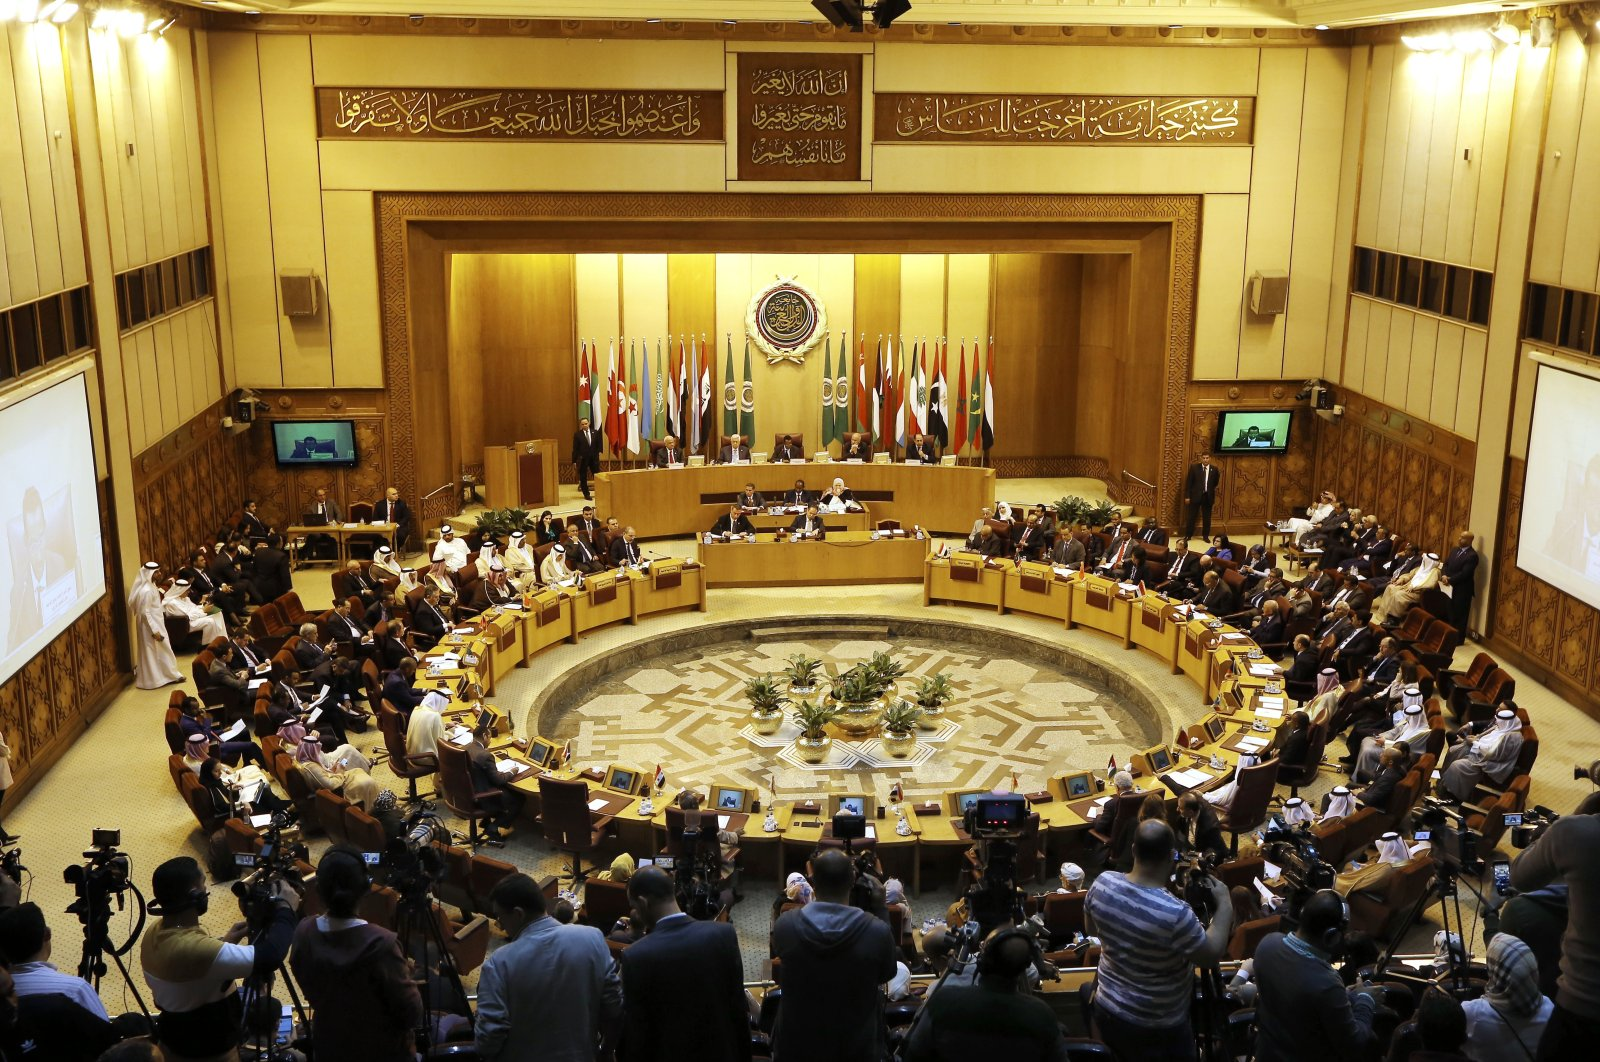 The extraordinary session of the Arab League foreign ministers meets to discuss the situation in the Palestinian territories at the Arab League's headquarters in Cairo, Egypt, April 21, 2019. (AP Photo)